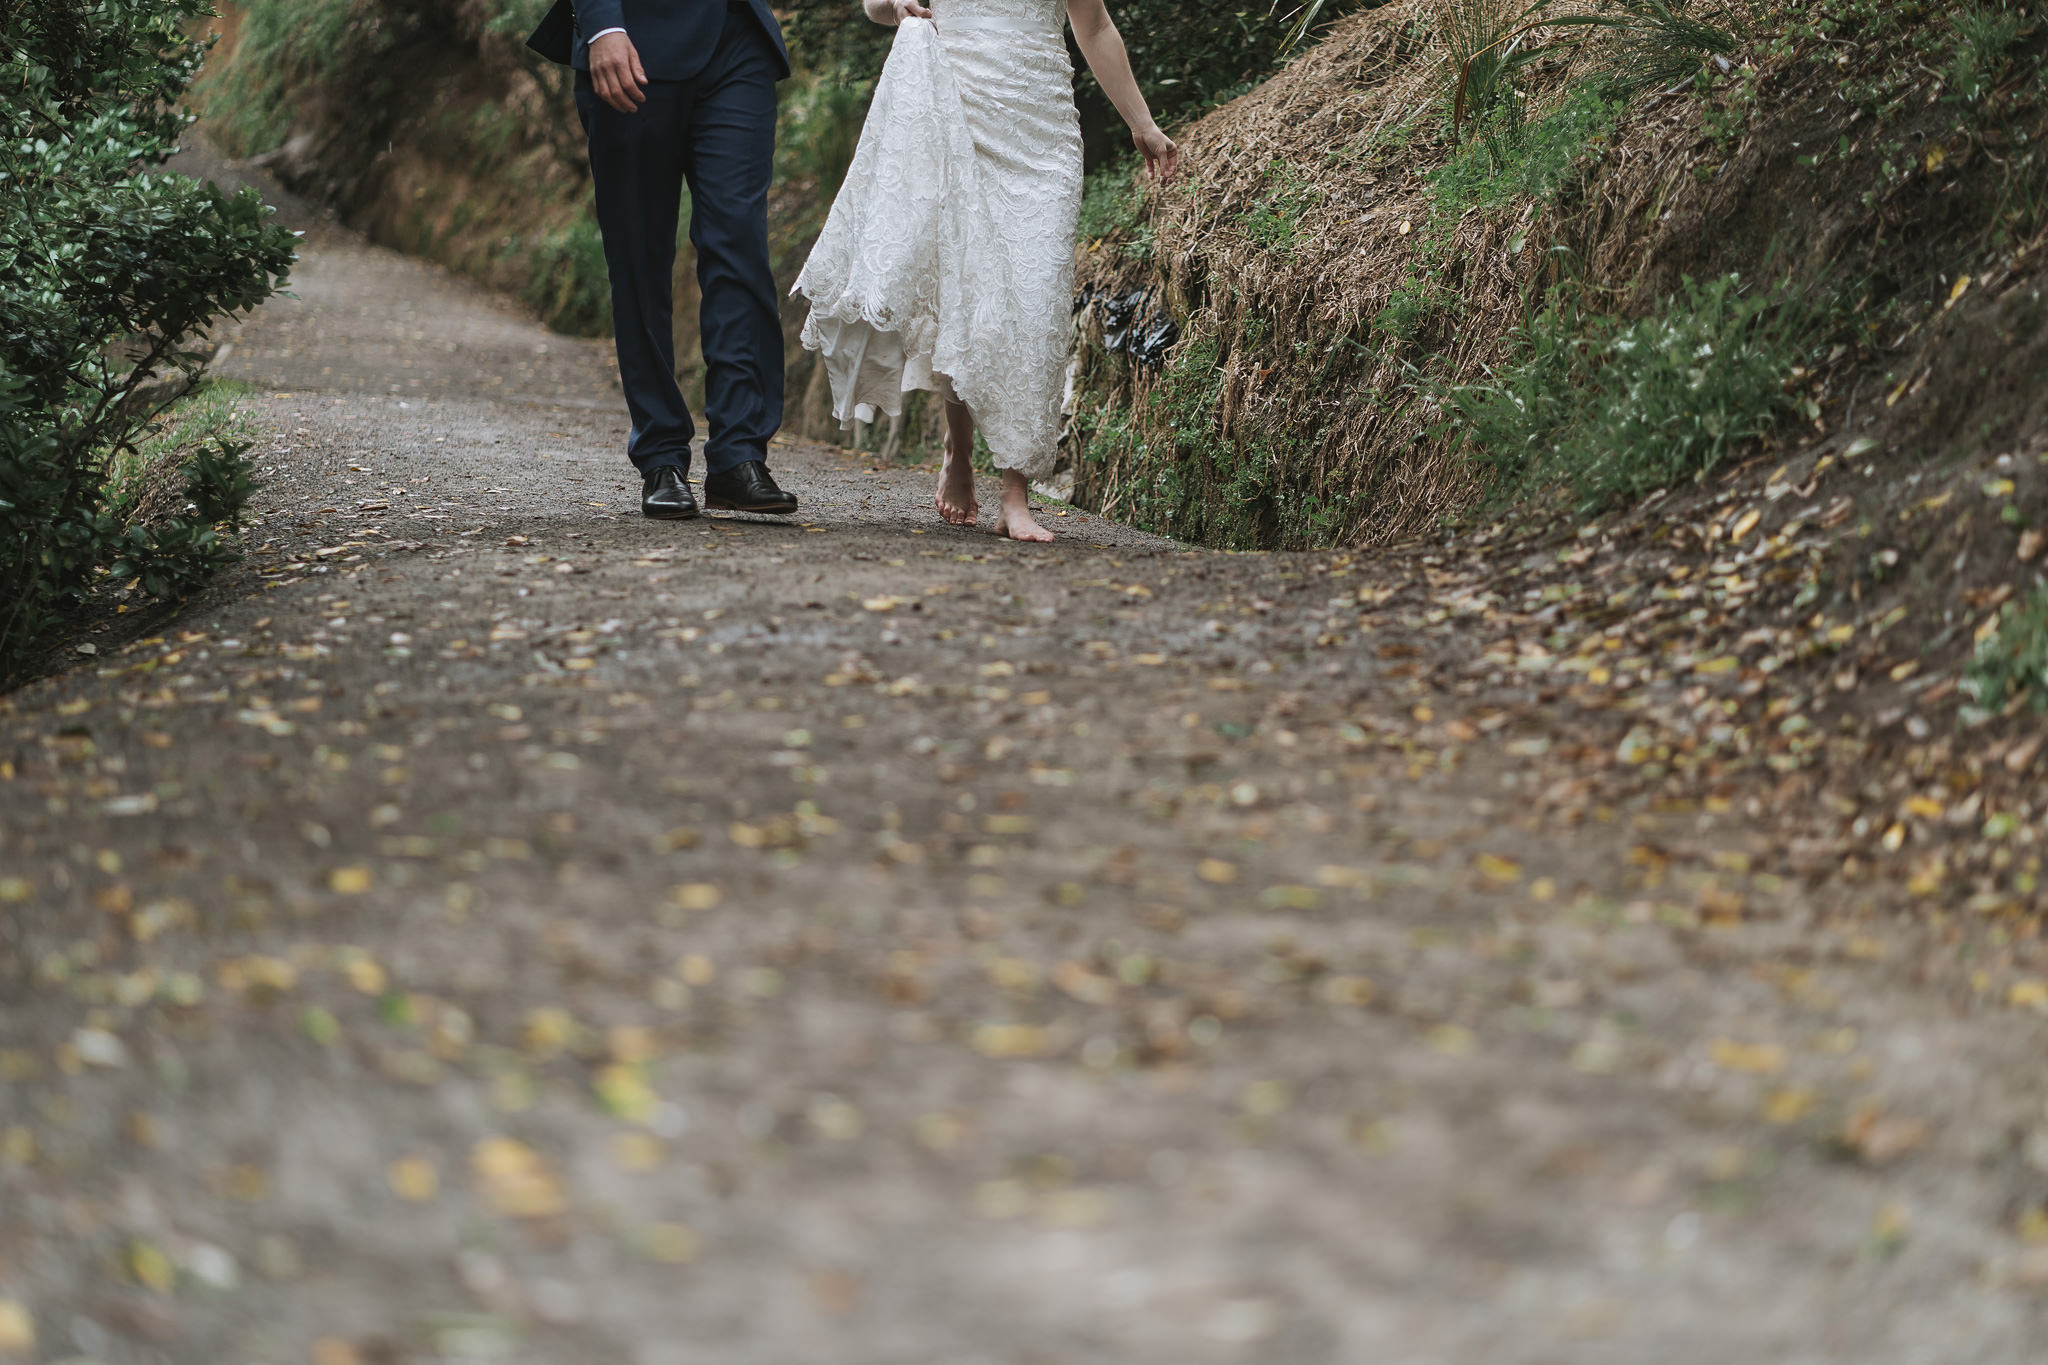 newfound-s-a-tauranga-new-zealand-wedding-photography-322